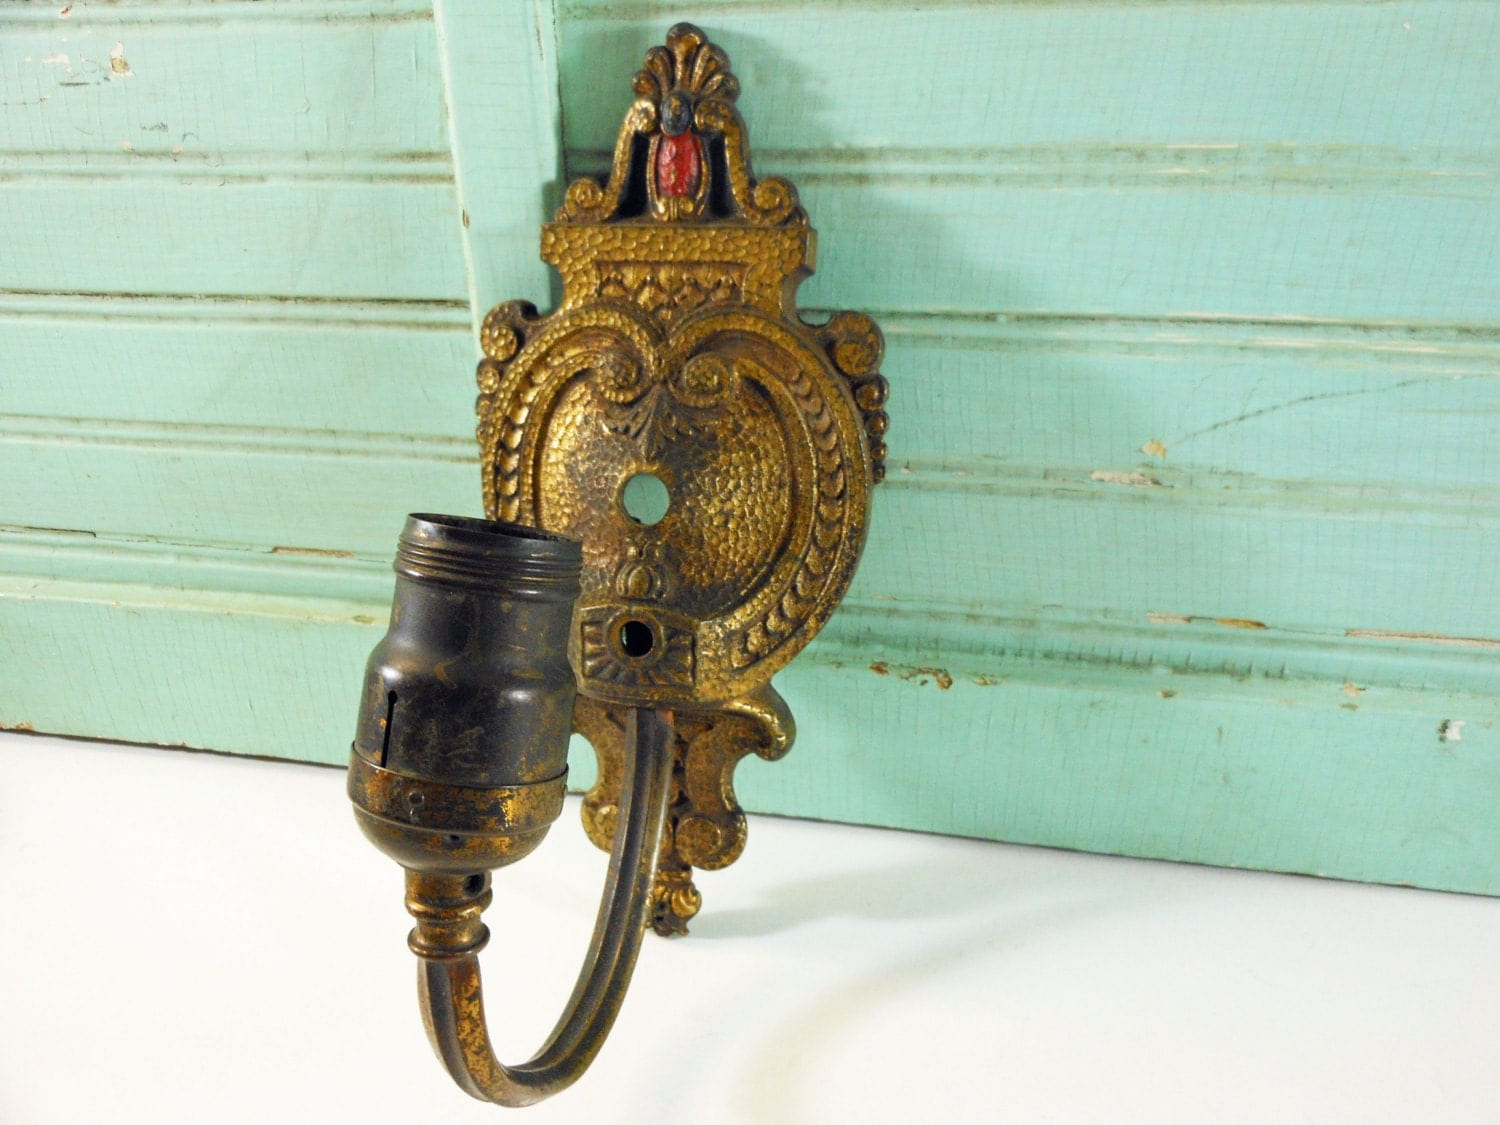 Ornate Brass Wall Lights : Vintage Ornate Heavy Brass Wall Sconce Light Fixture with Red